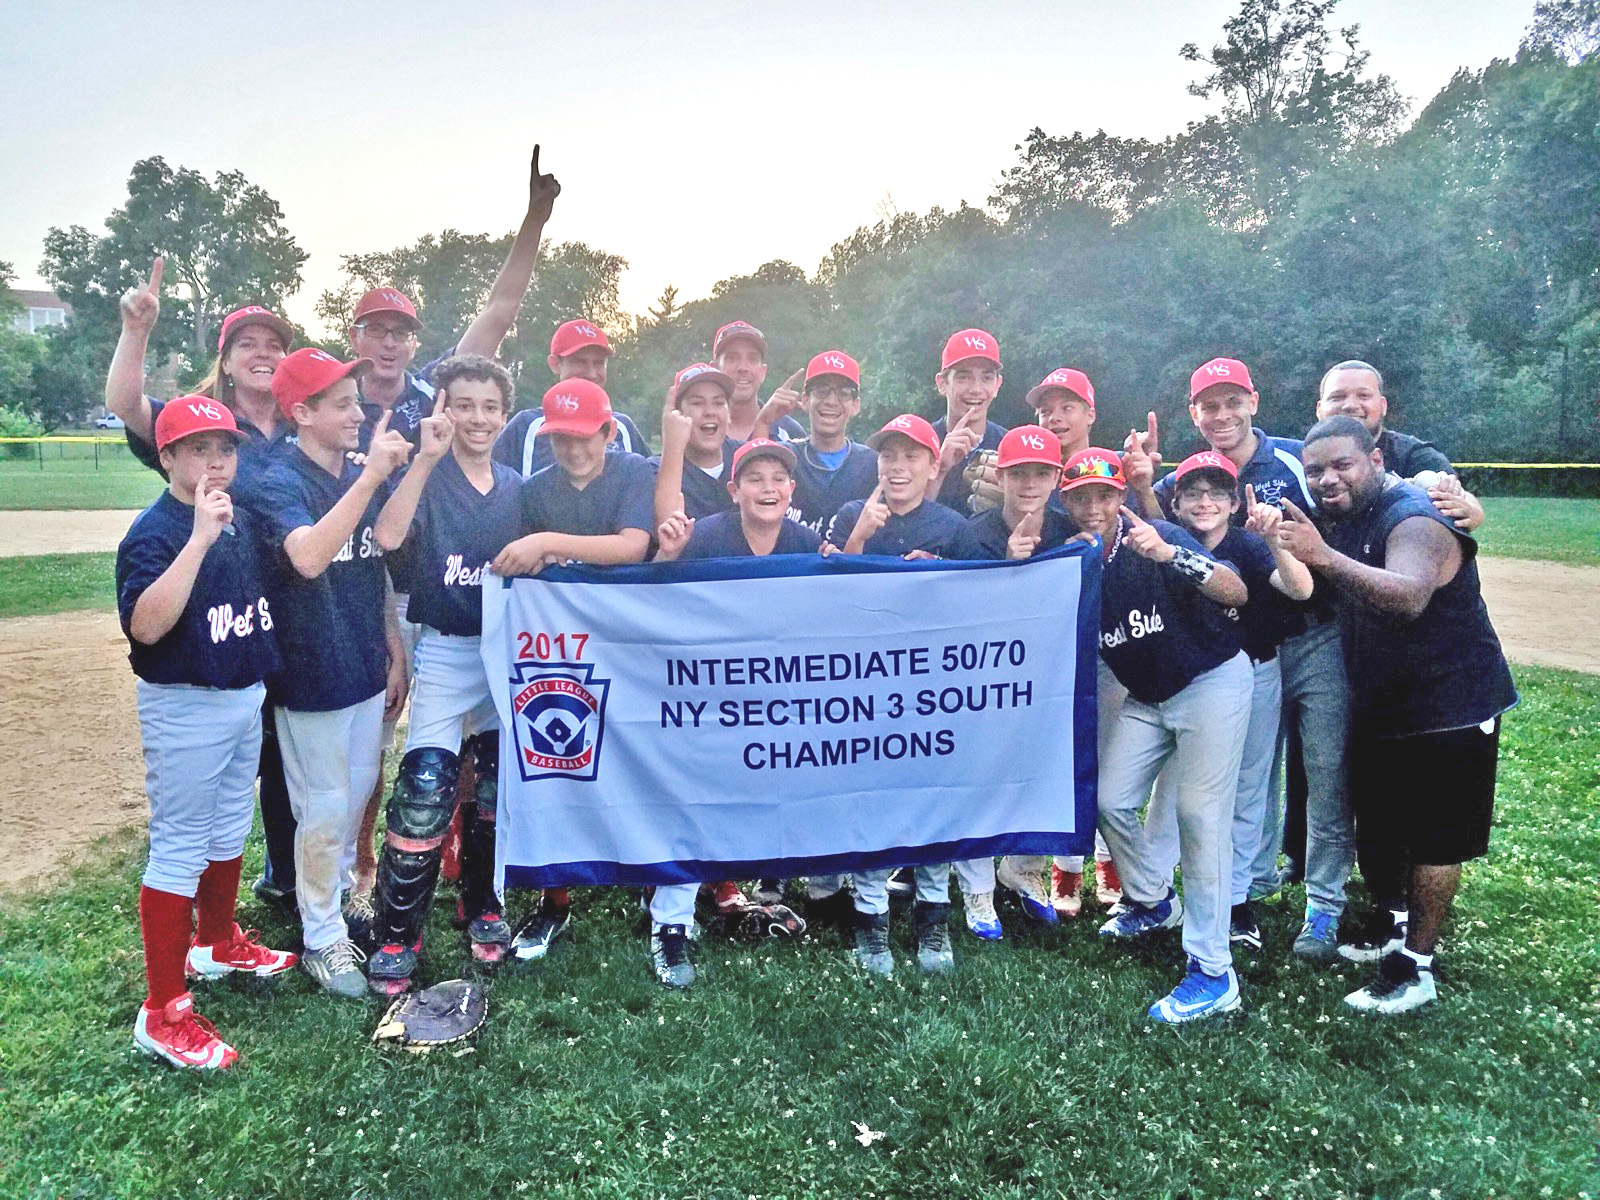 West Side Little League - WSLL 13u Hawks - NYC 2017 50/70 Sectional Champions!